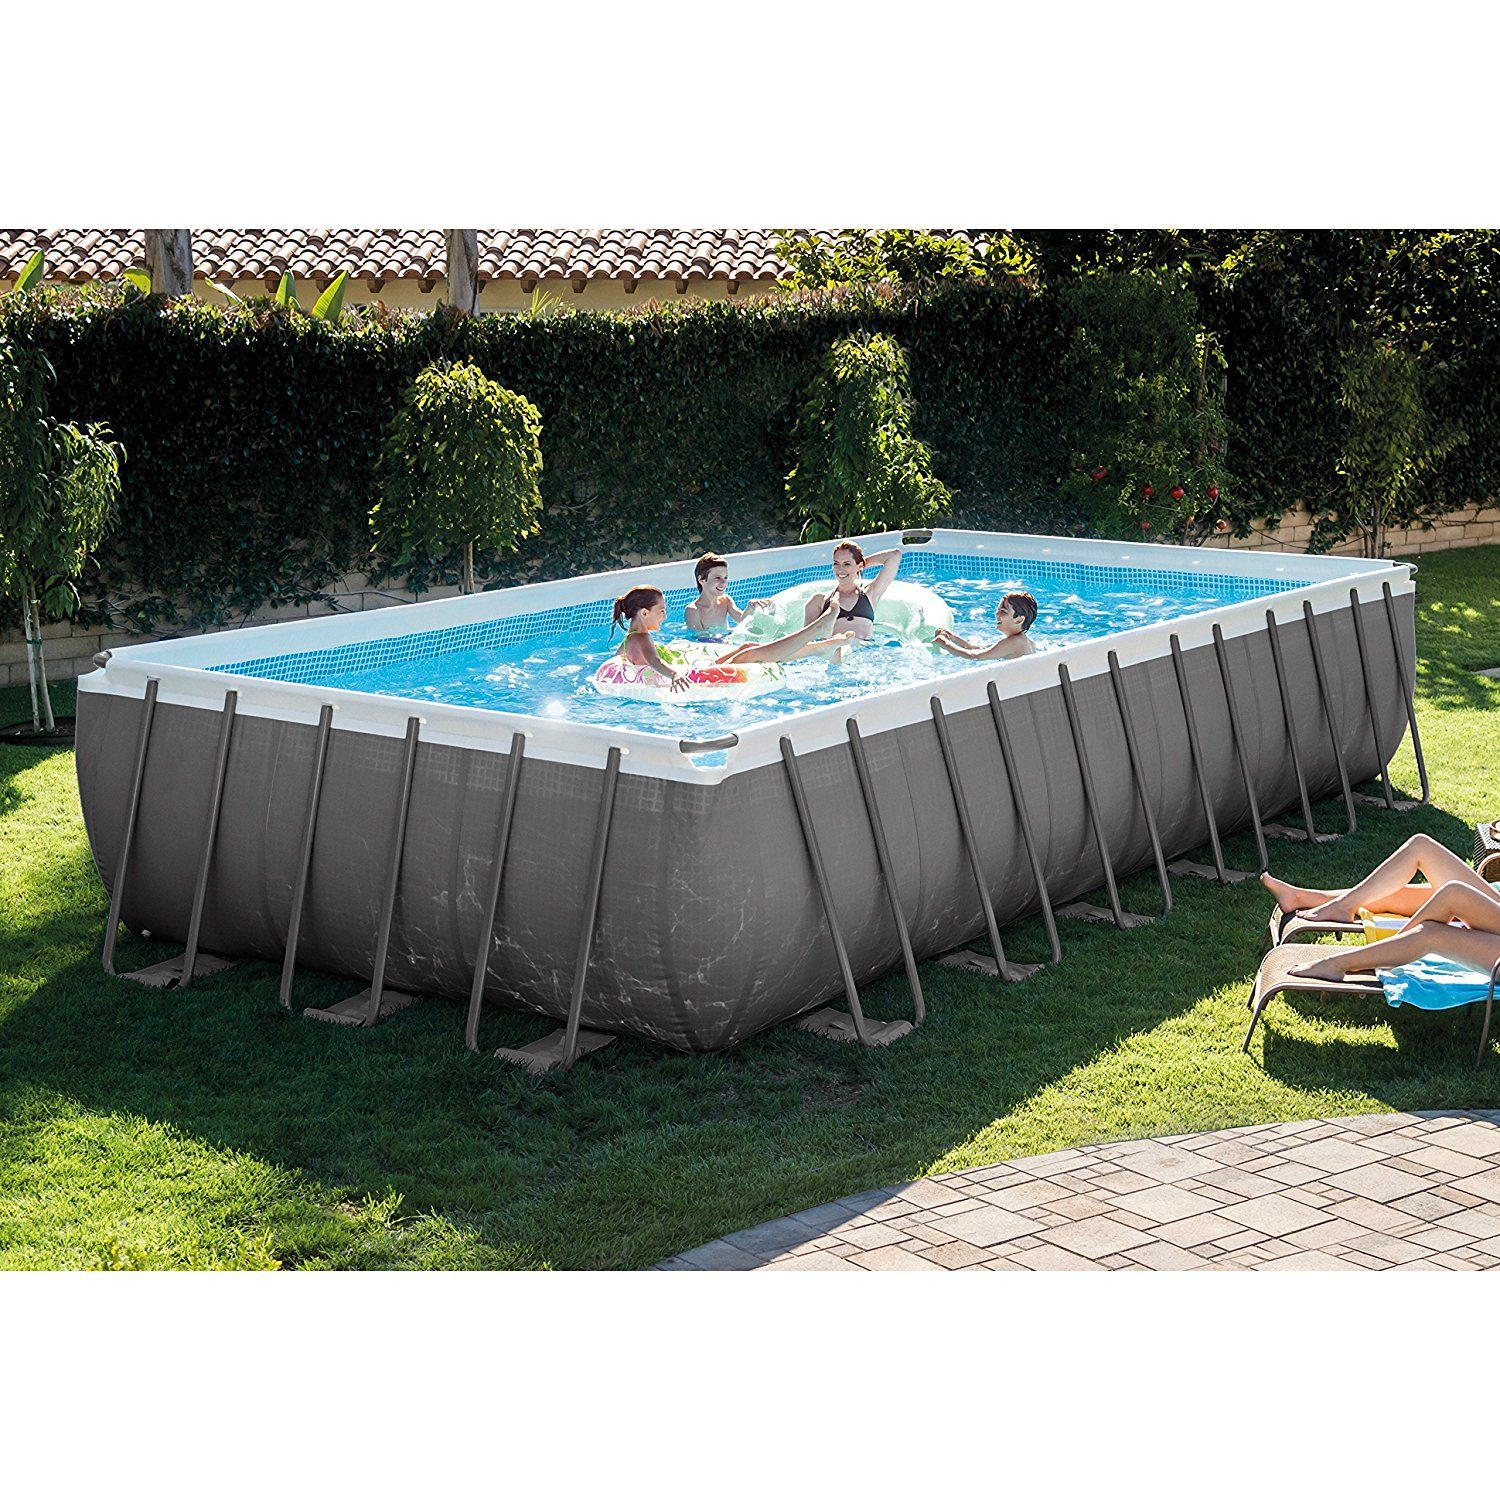 Intex 24ft X 12ft X 52in Ultra Frame Rectangular Pool Set With Sand Filter Pump Amp Saltwater Sys Rectangular Pool Rectangle Pool Above Ground Swimming Pools